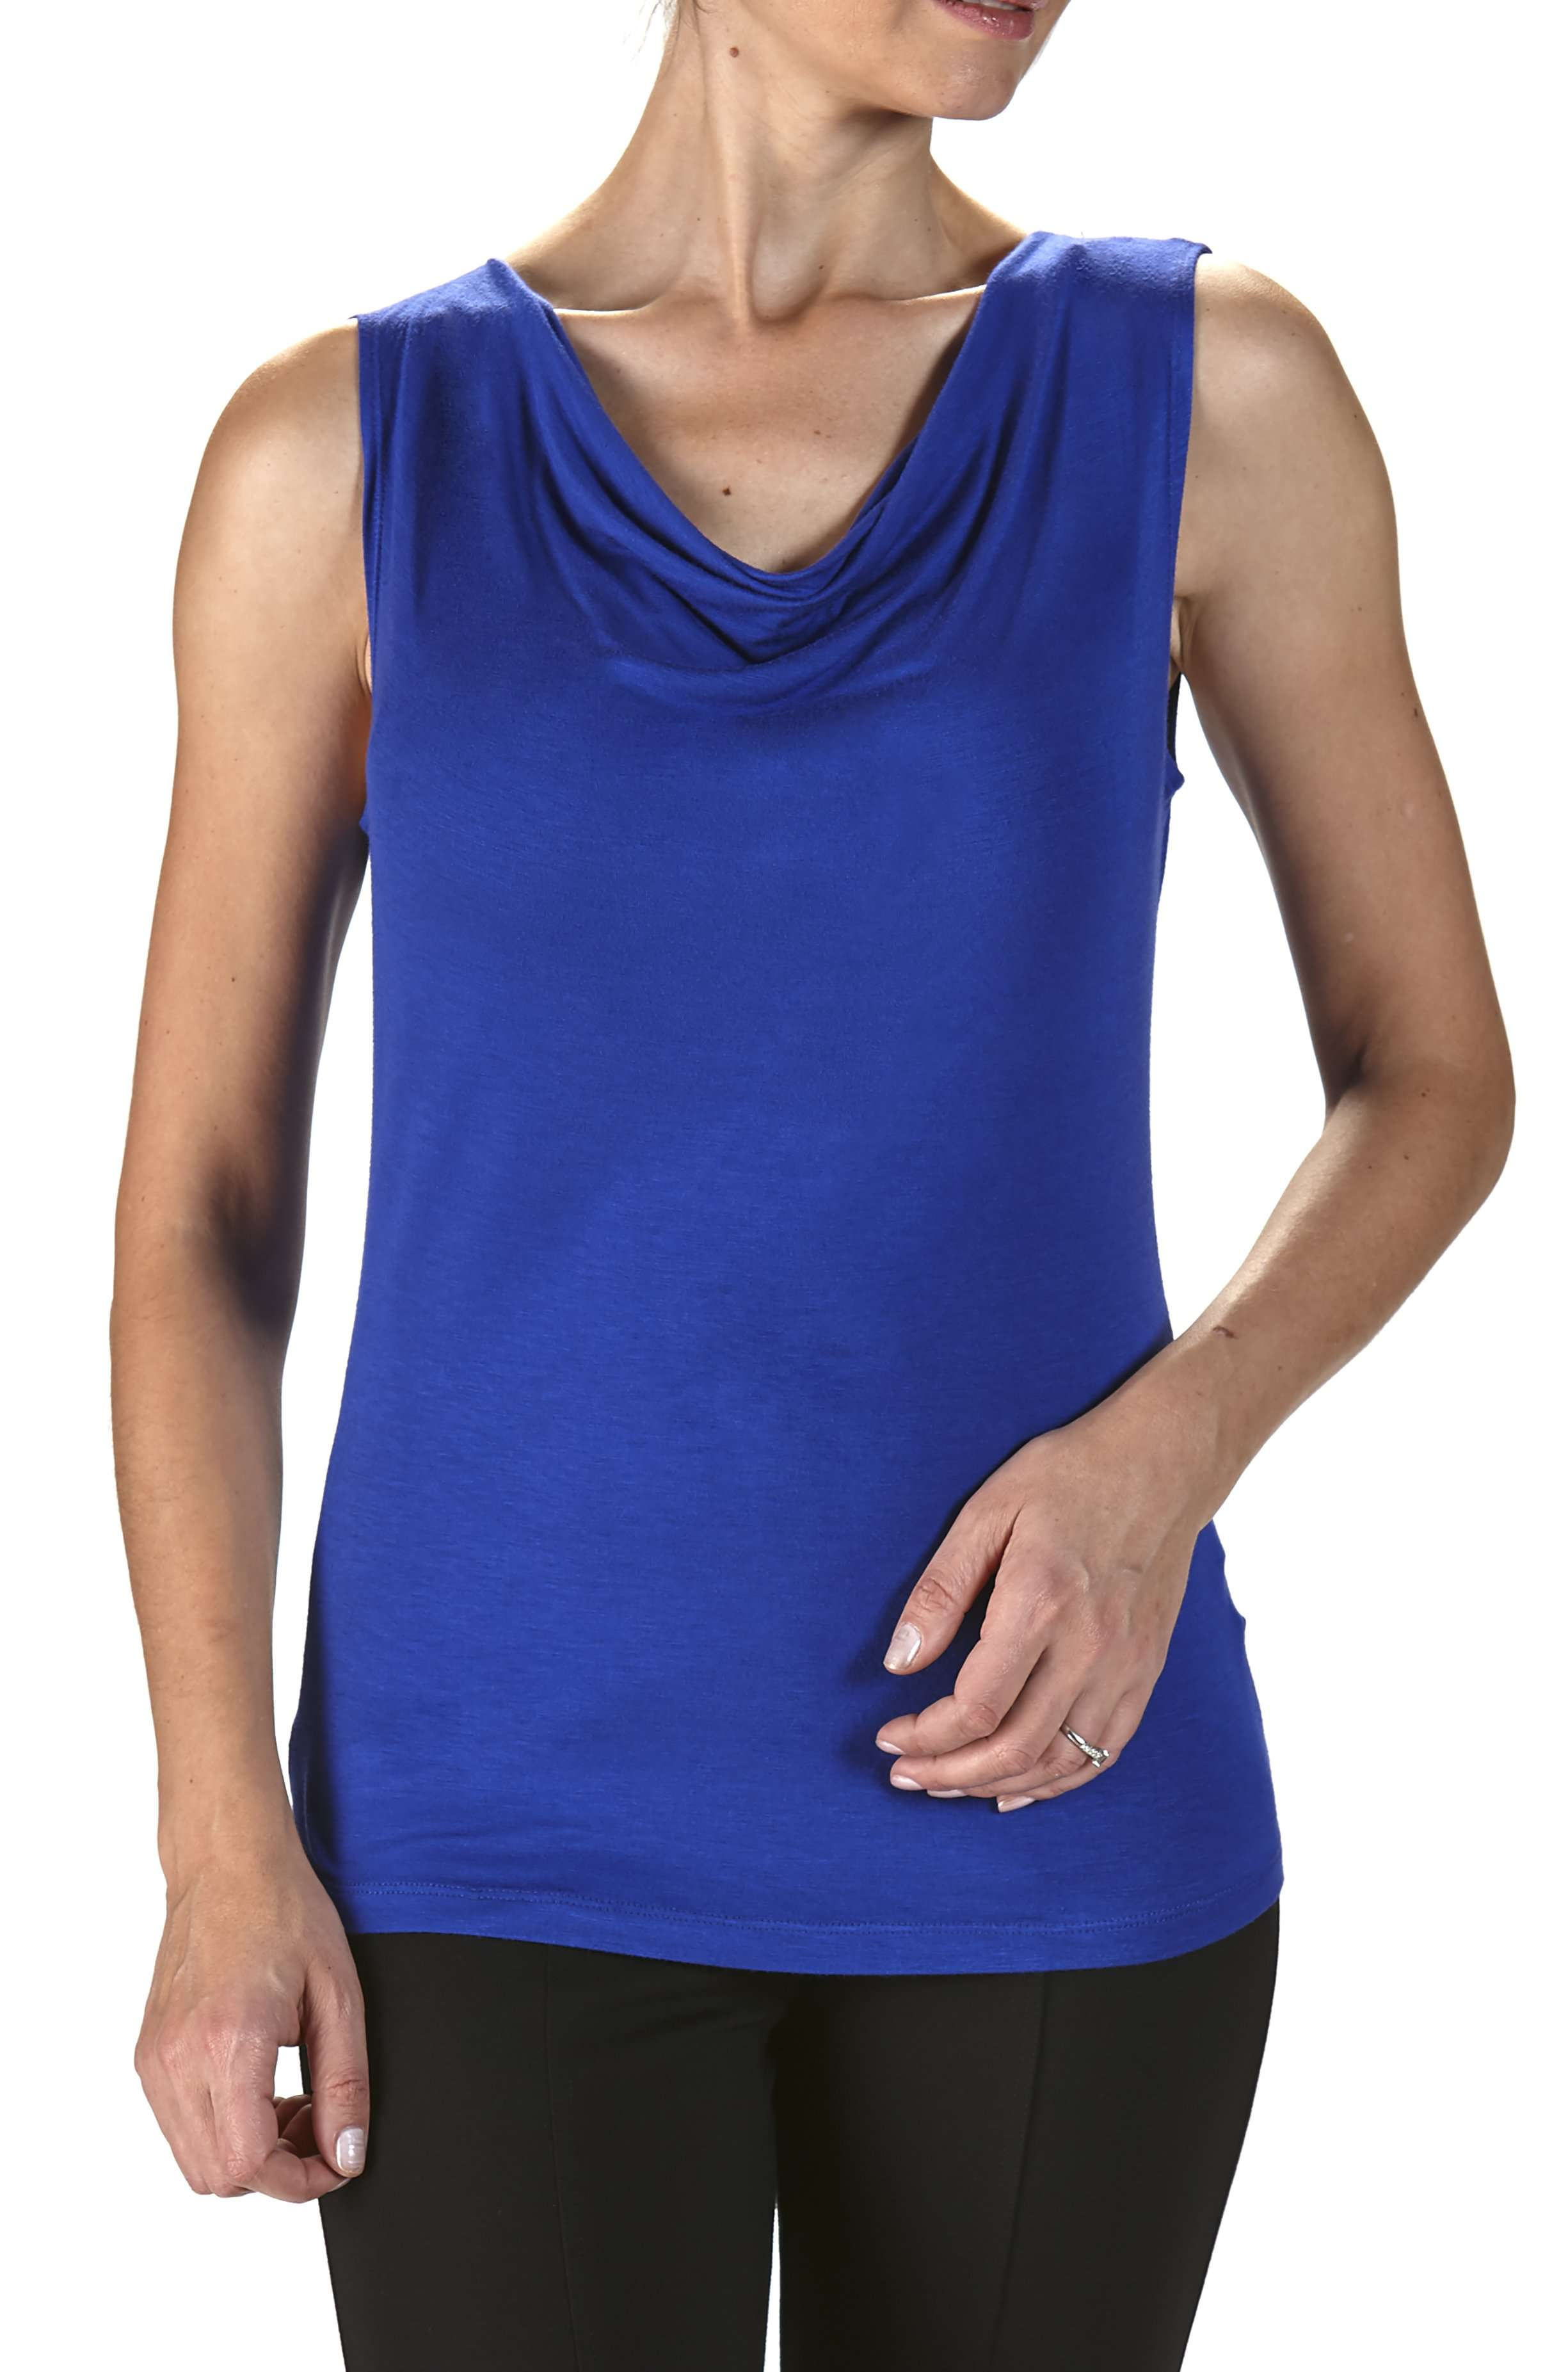 Women's Tank Tops Canada | Royal Blue Tank Top | Clearance Sale | Now 19.99 | YM Style - Yvonne Marie